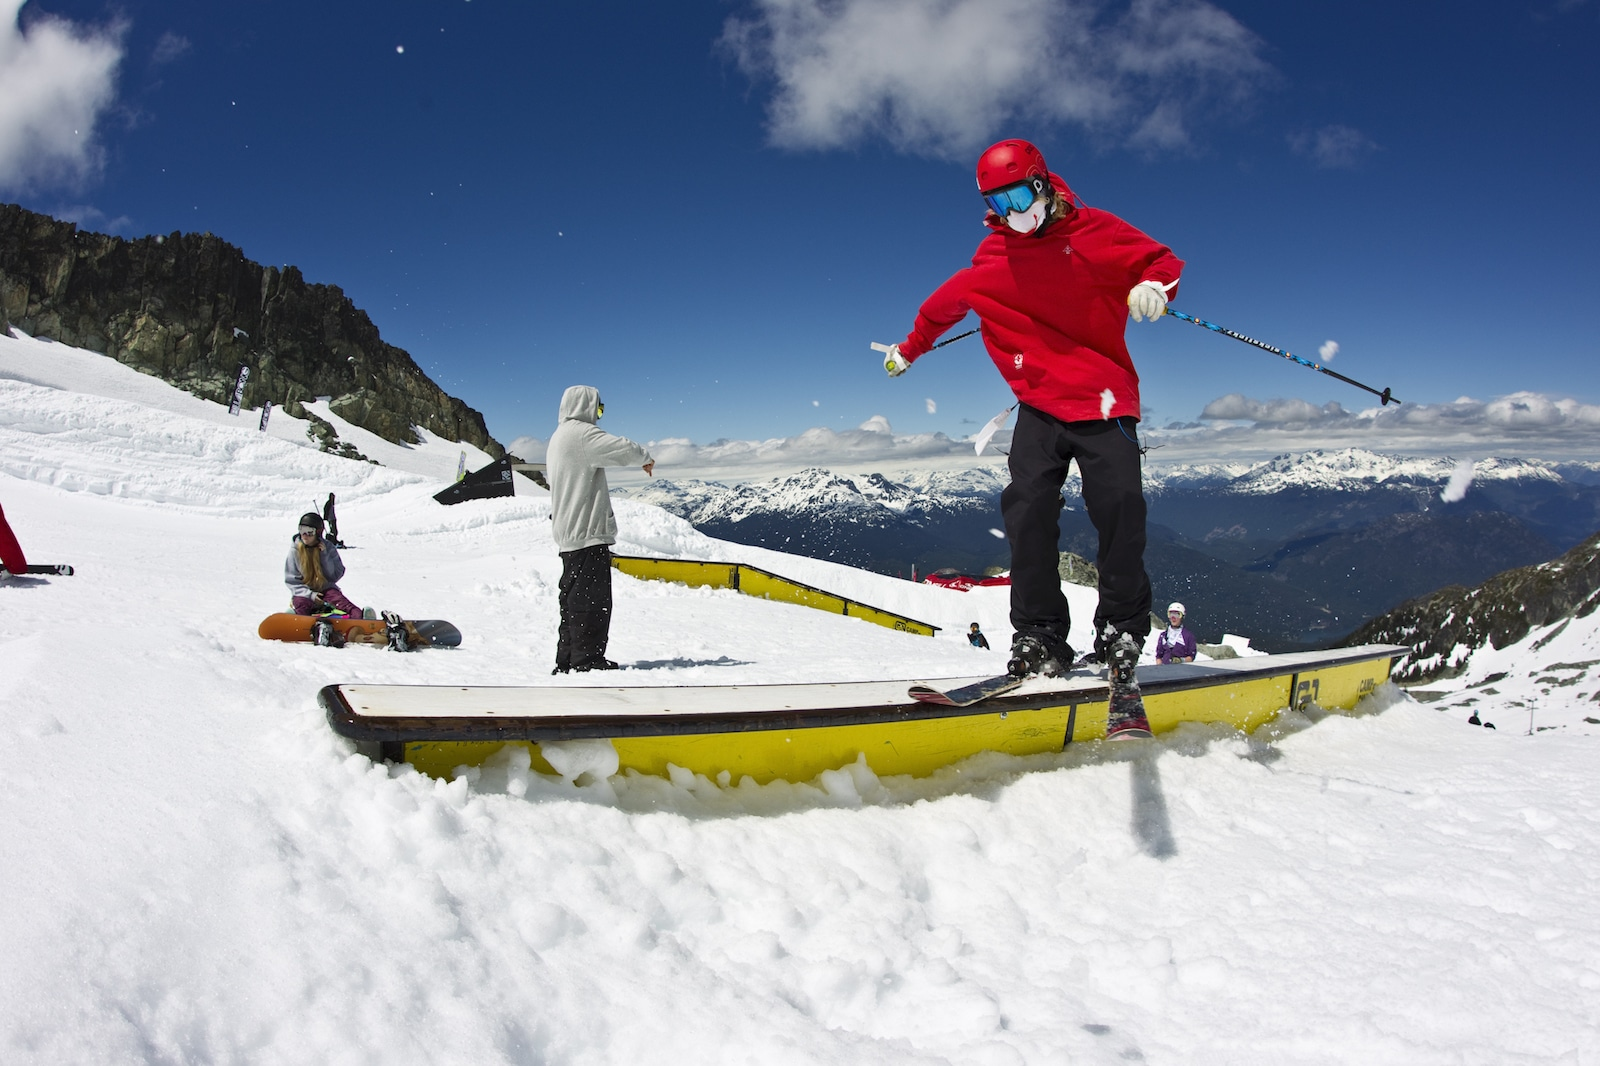 Image of a skier doing tricks at the terrain park at Whistler Blackcomb in Canada